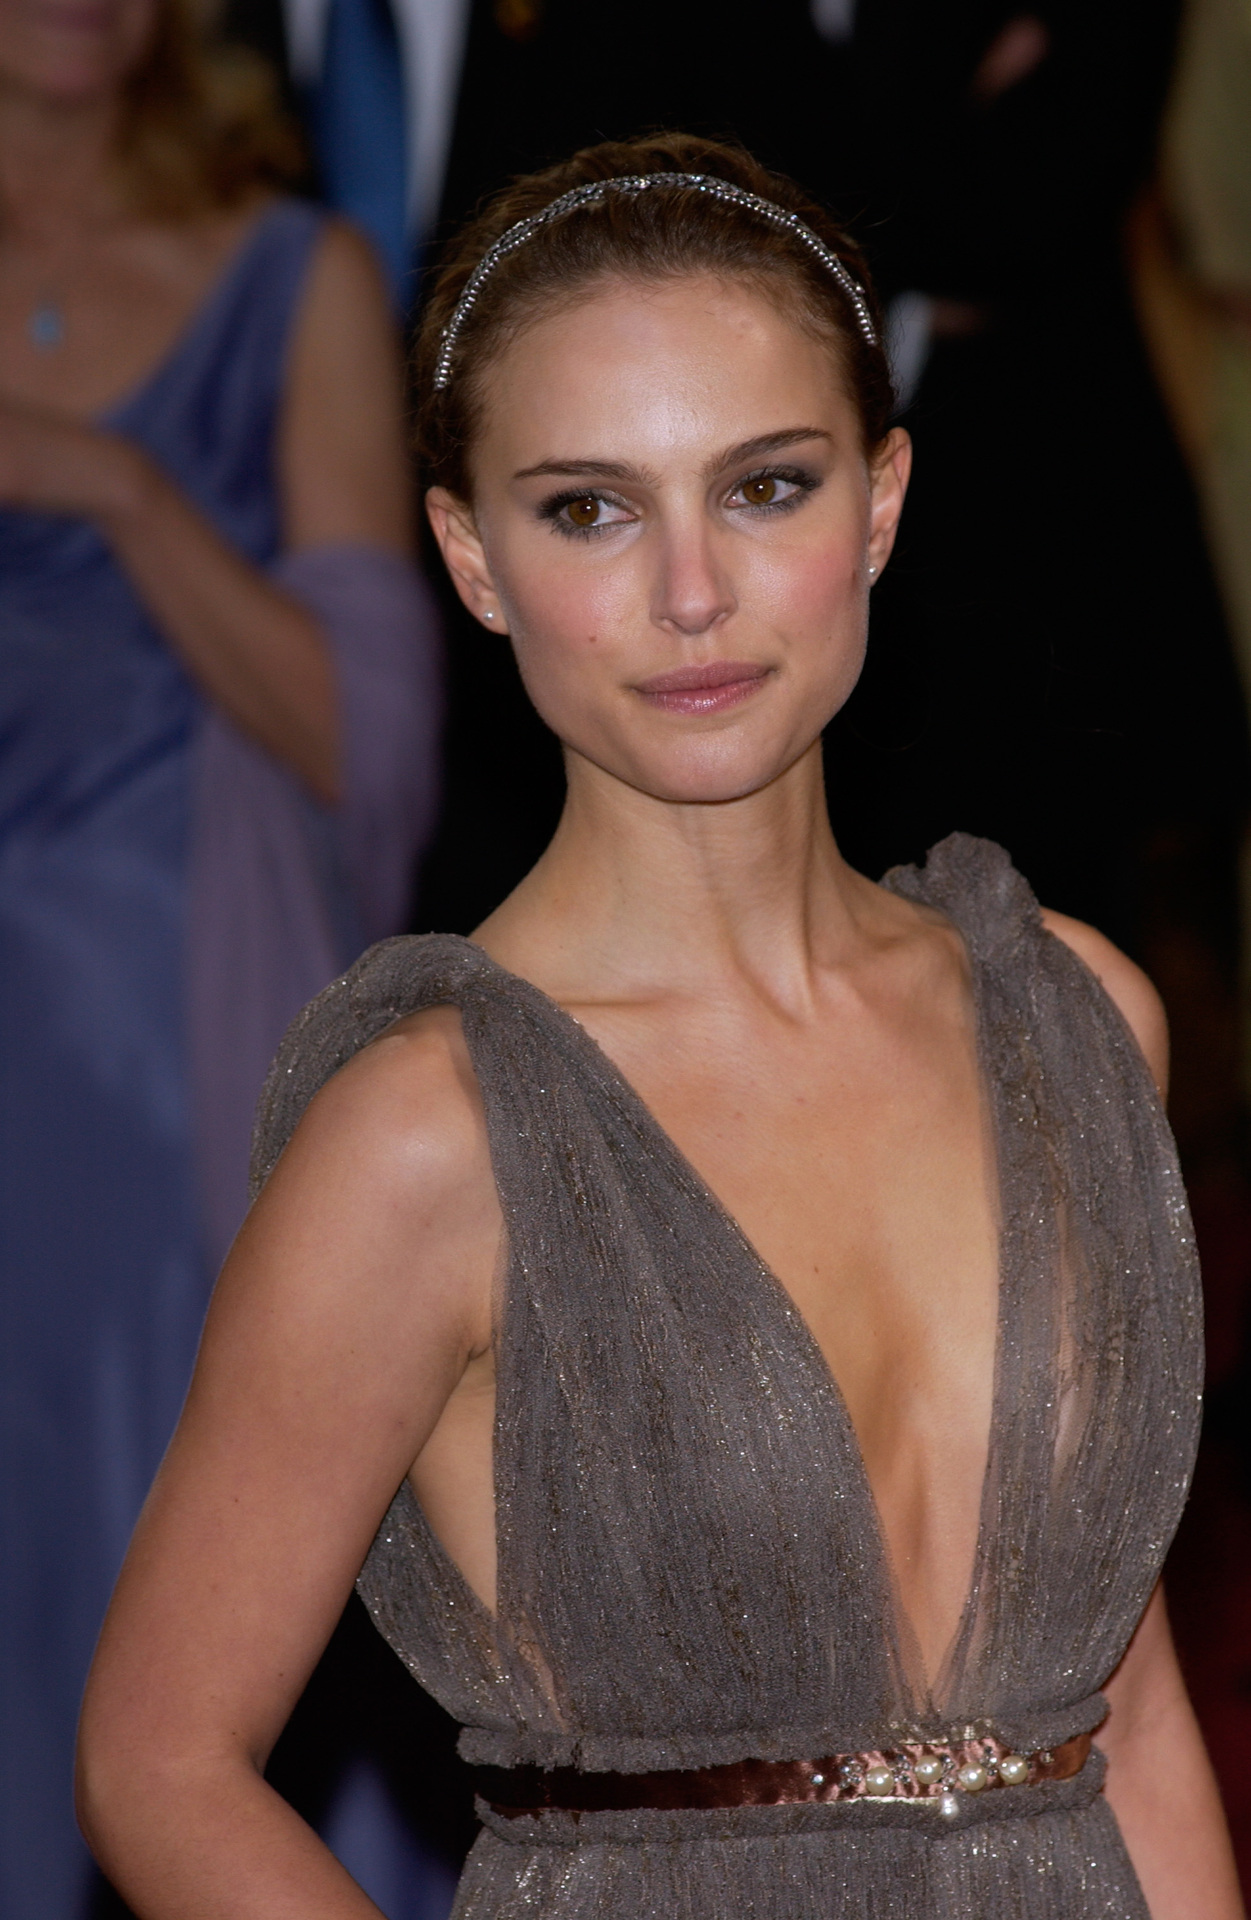 Natalie Portman - Gallery Colection